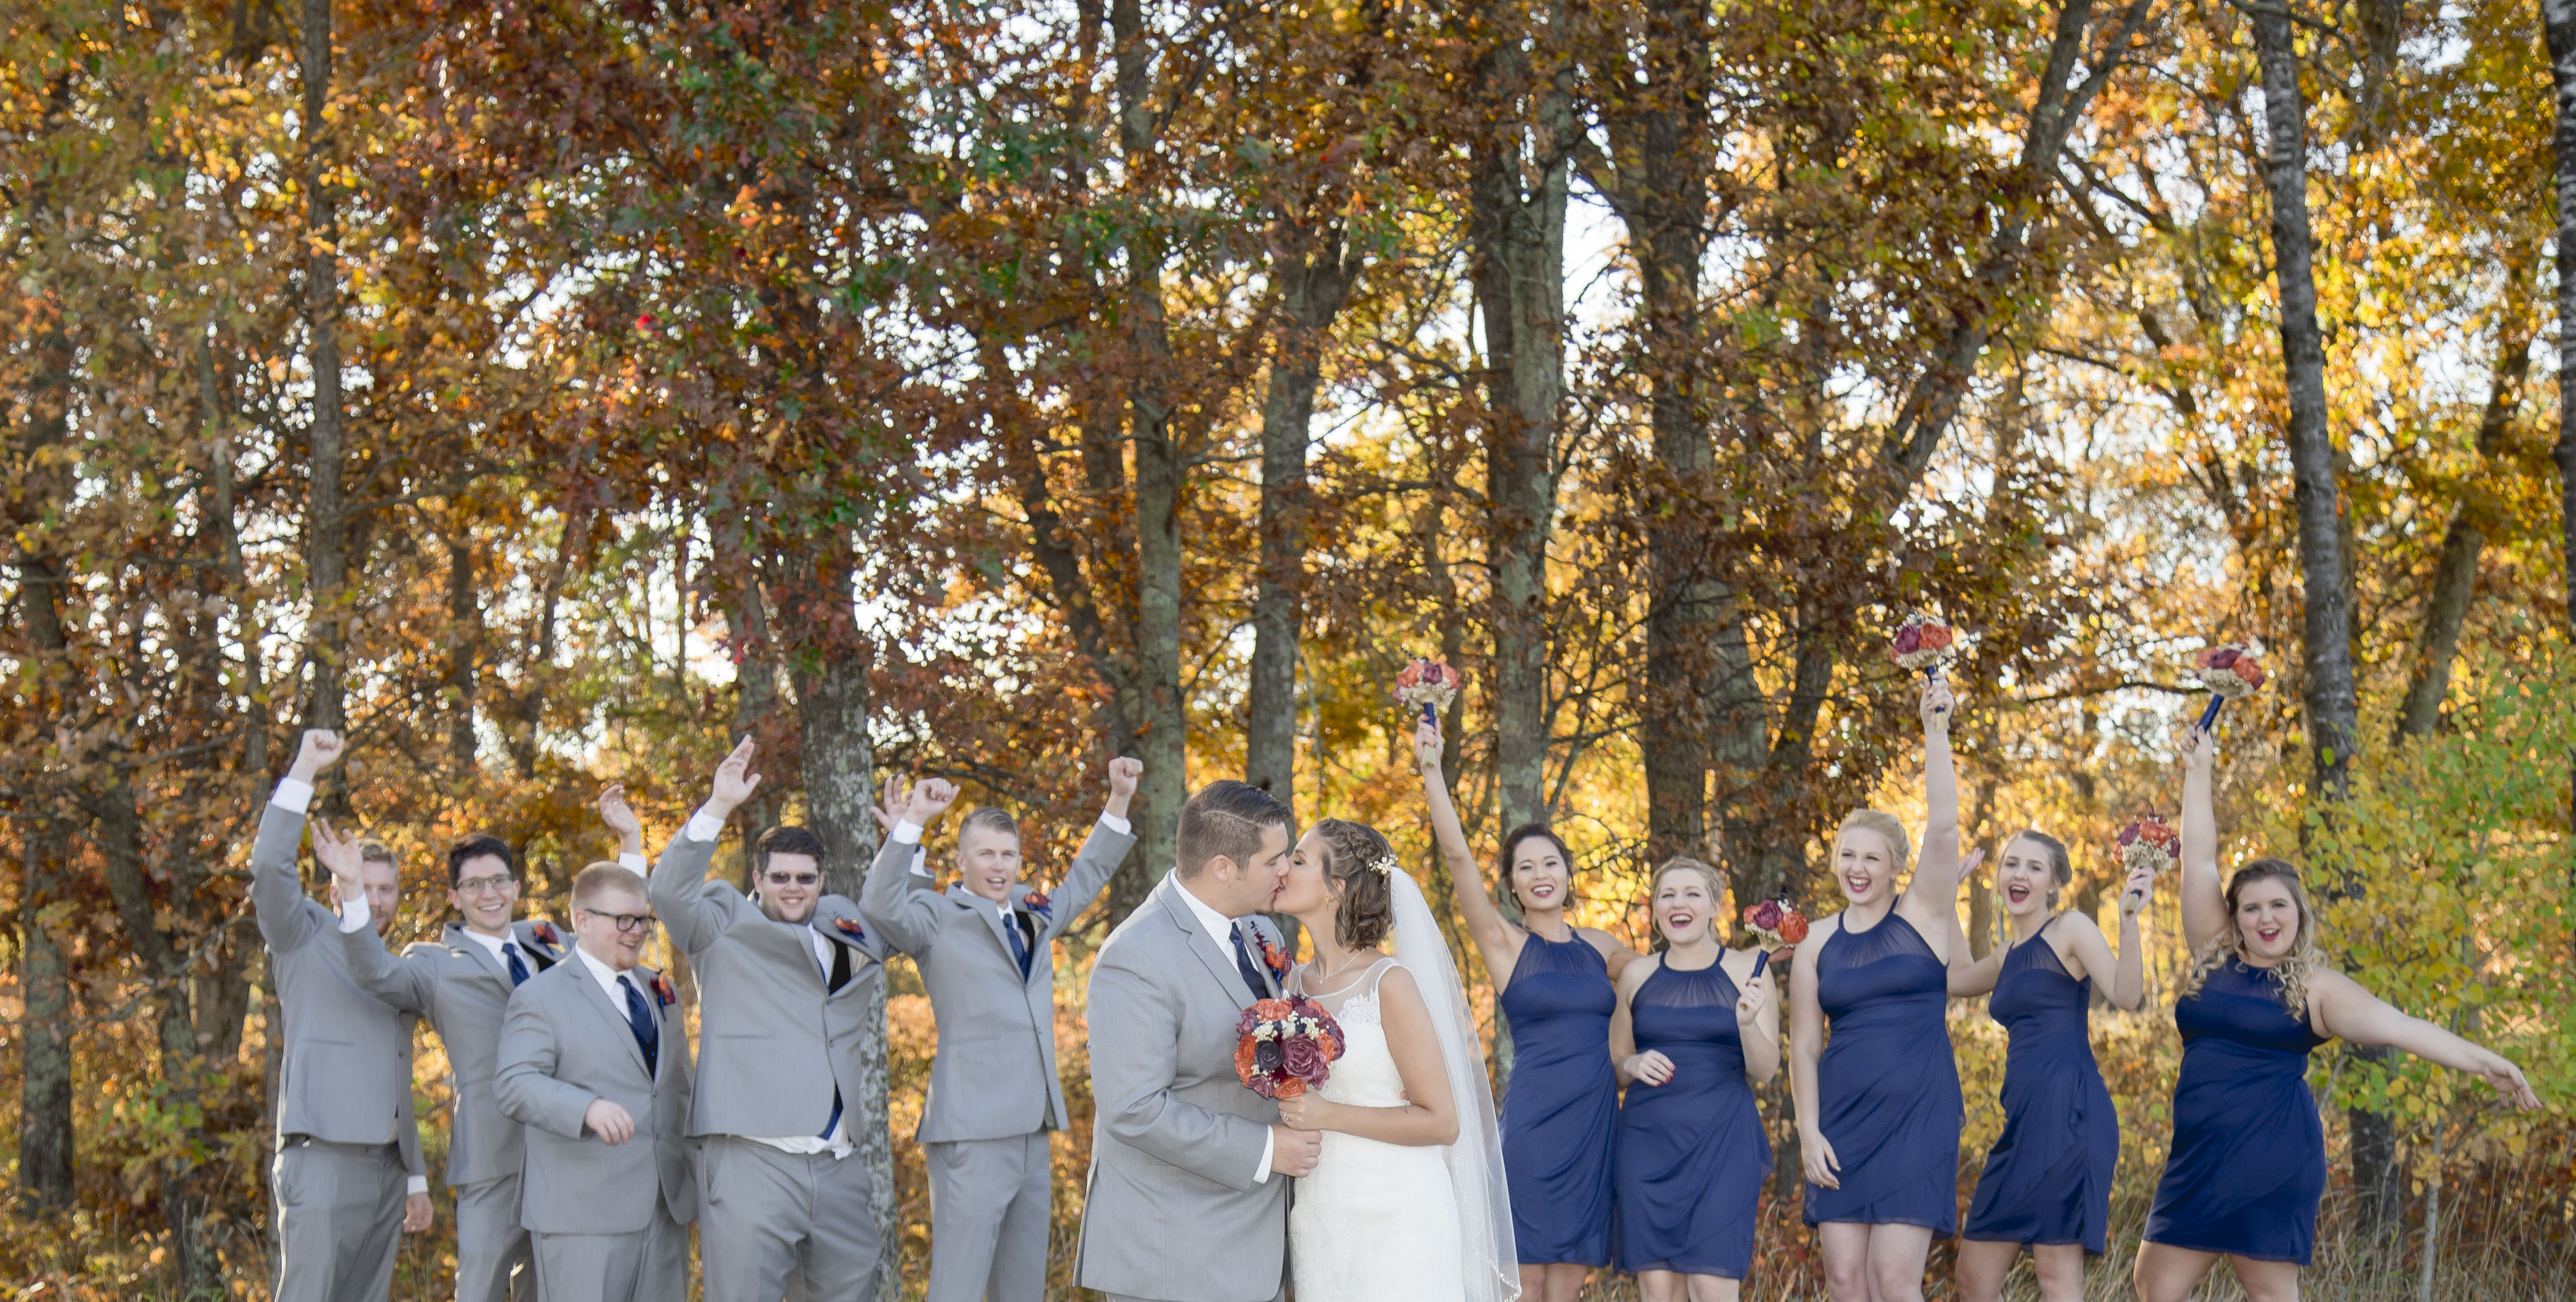 ADOR wedding photography Whitefish Lodge Crosslake MN_377